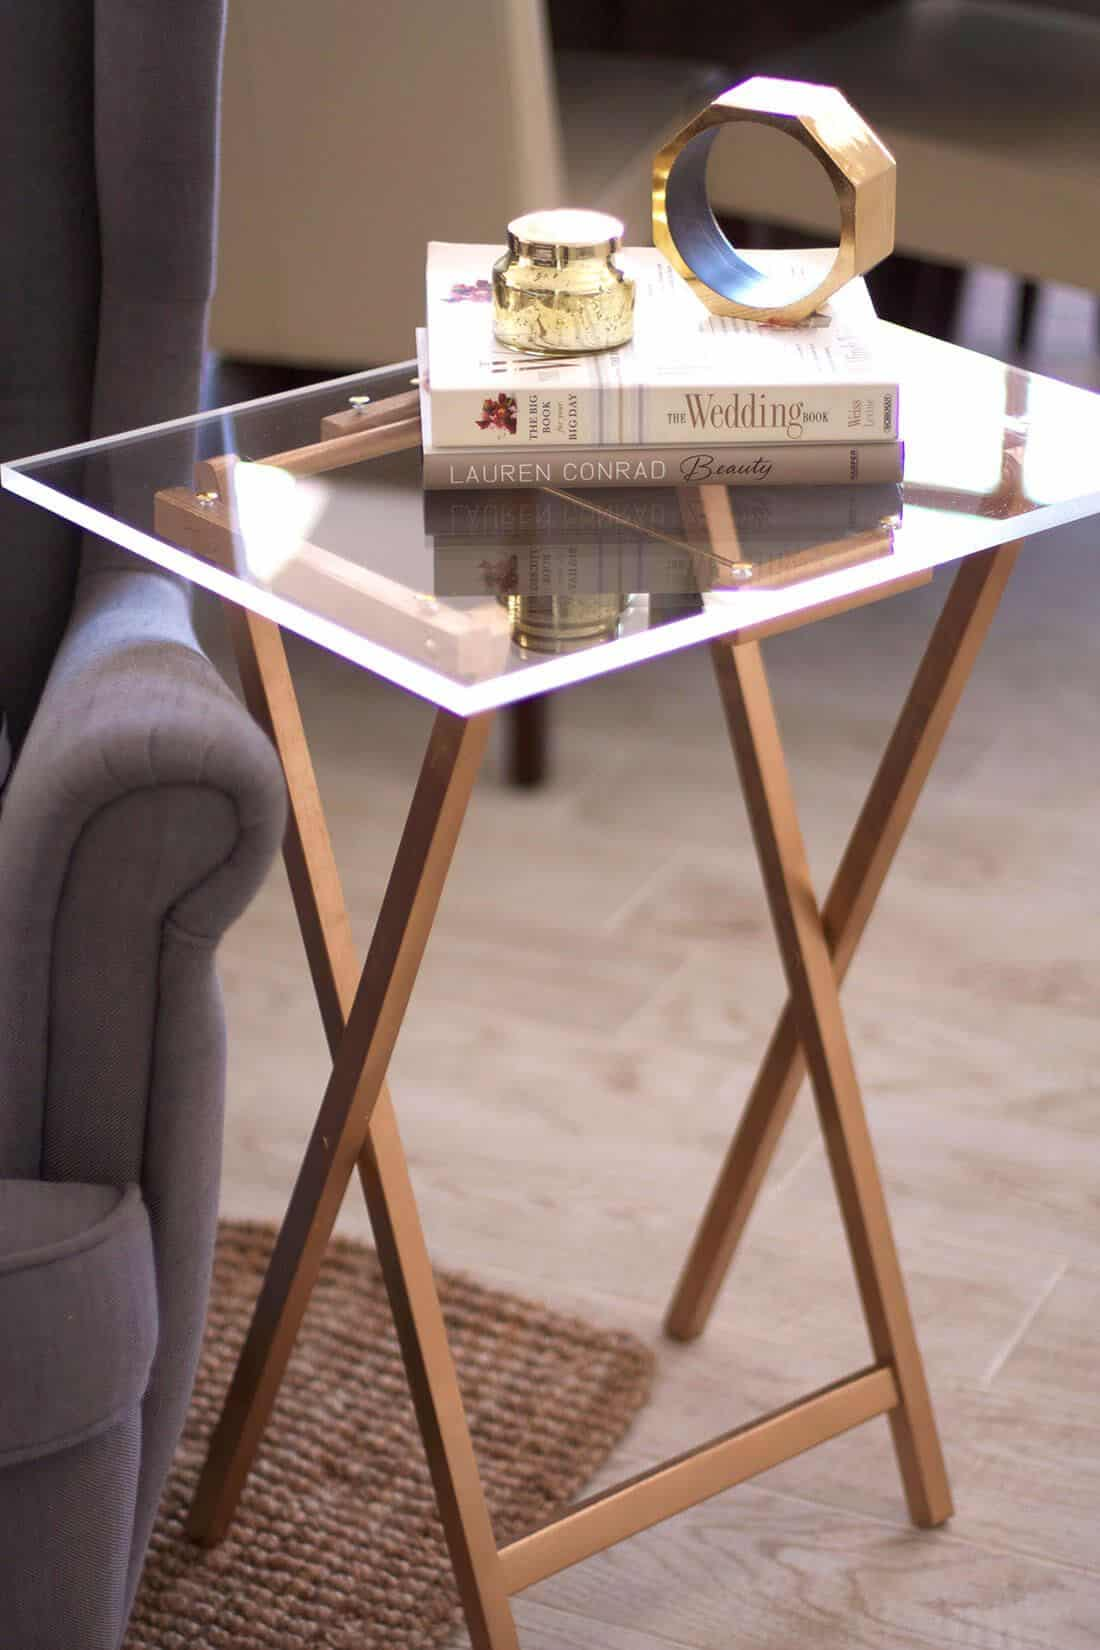 The Simple TV Tray Side Table